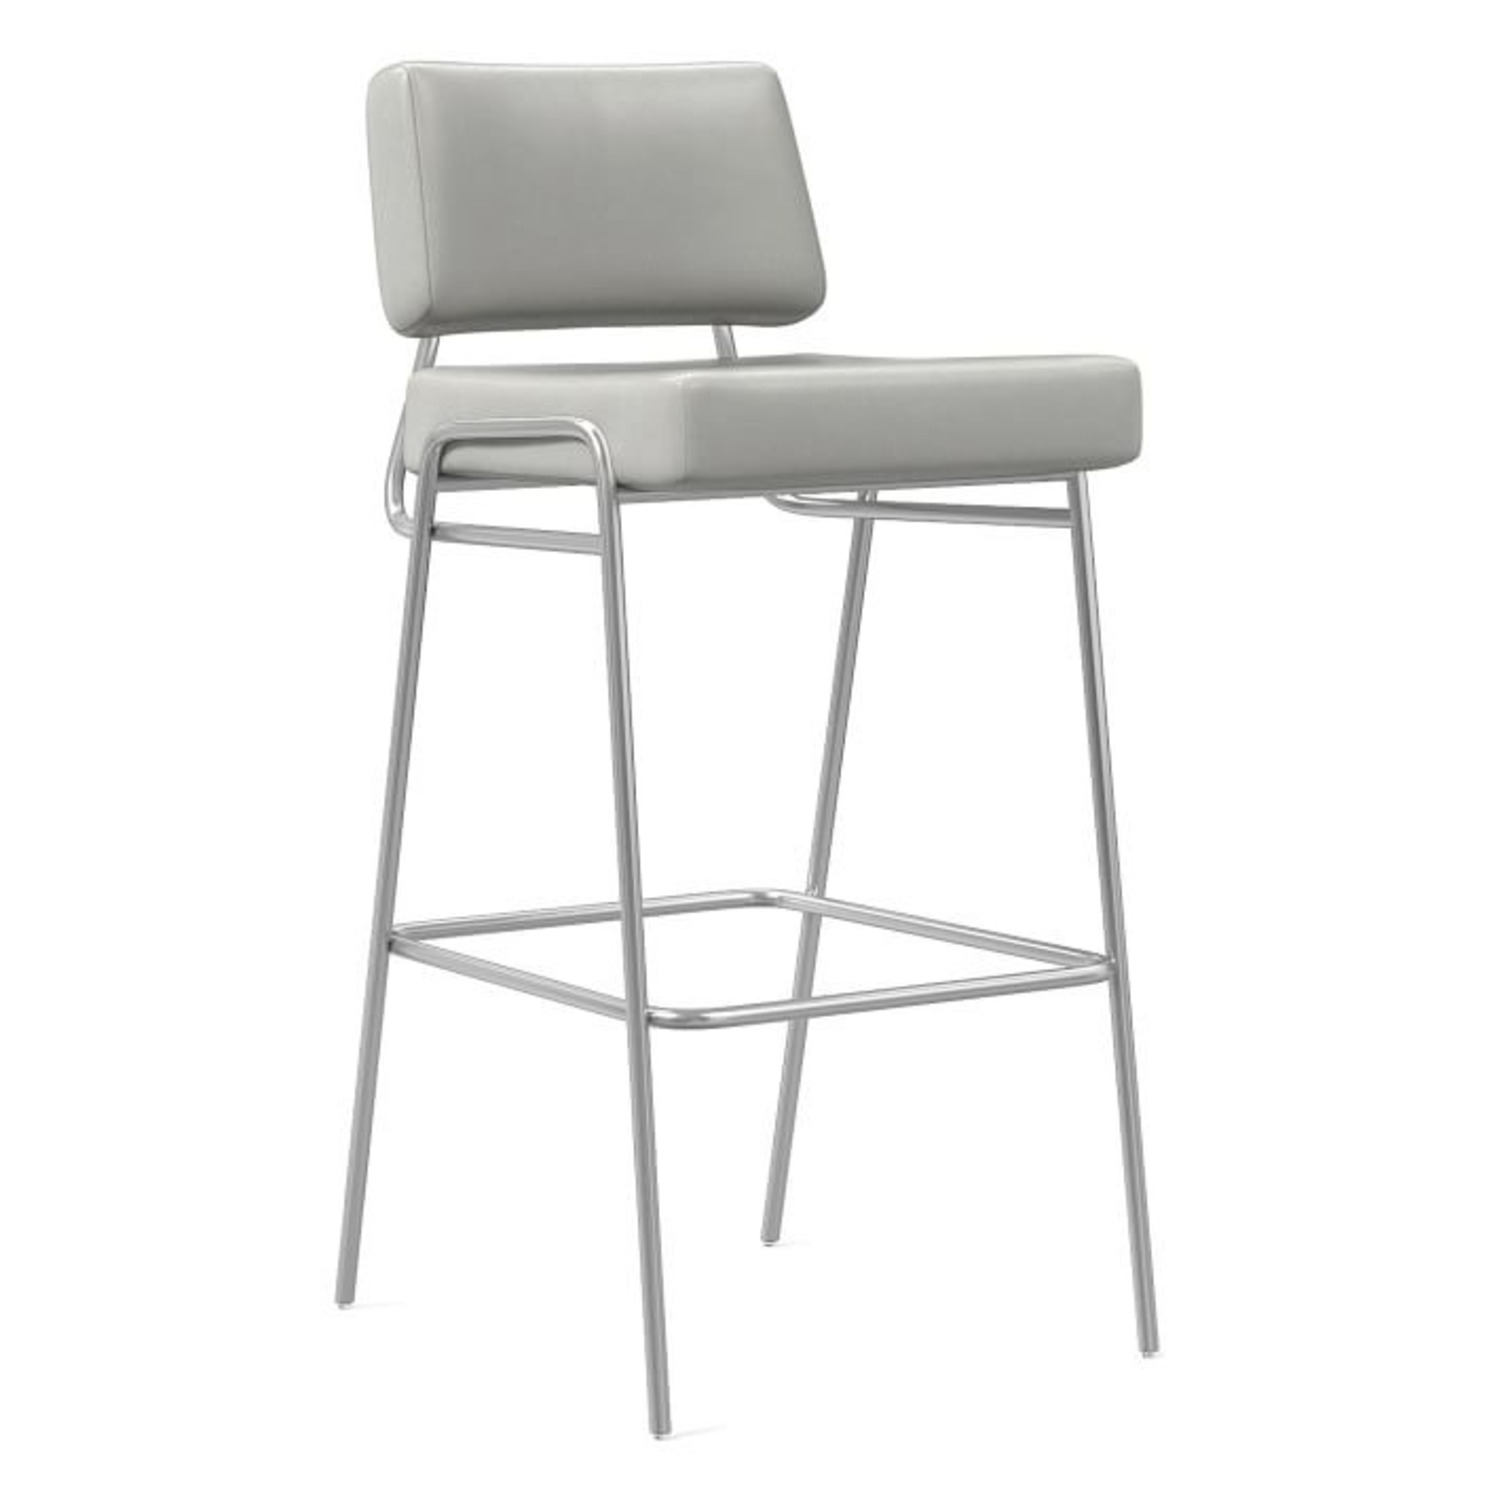 West Elm Wire Frame Bar Stool - image-1